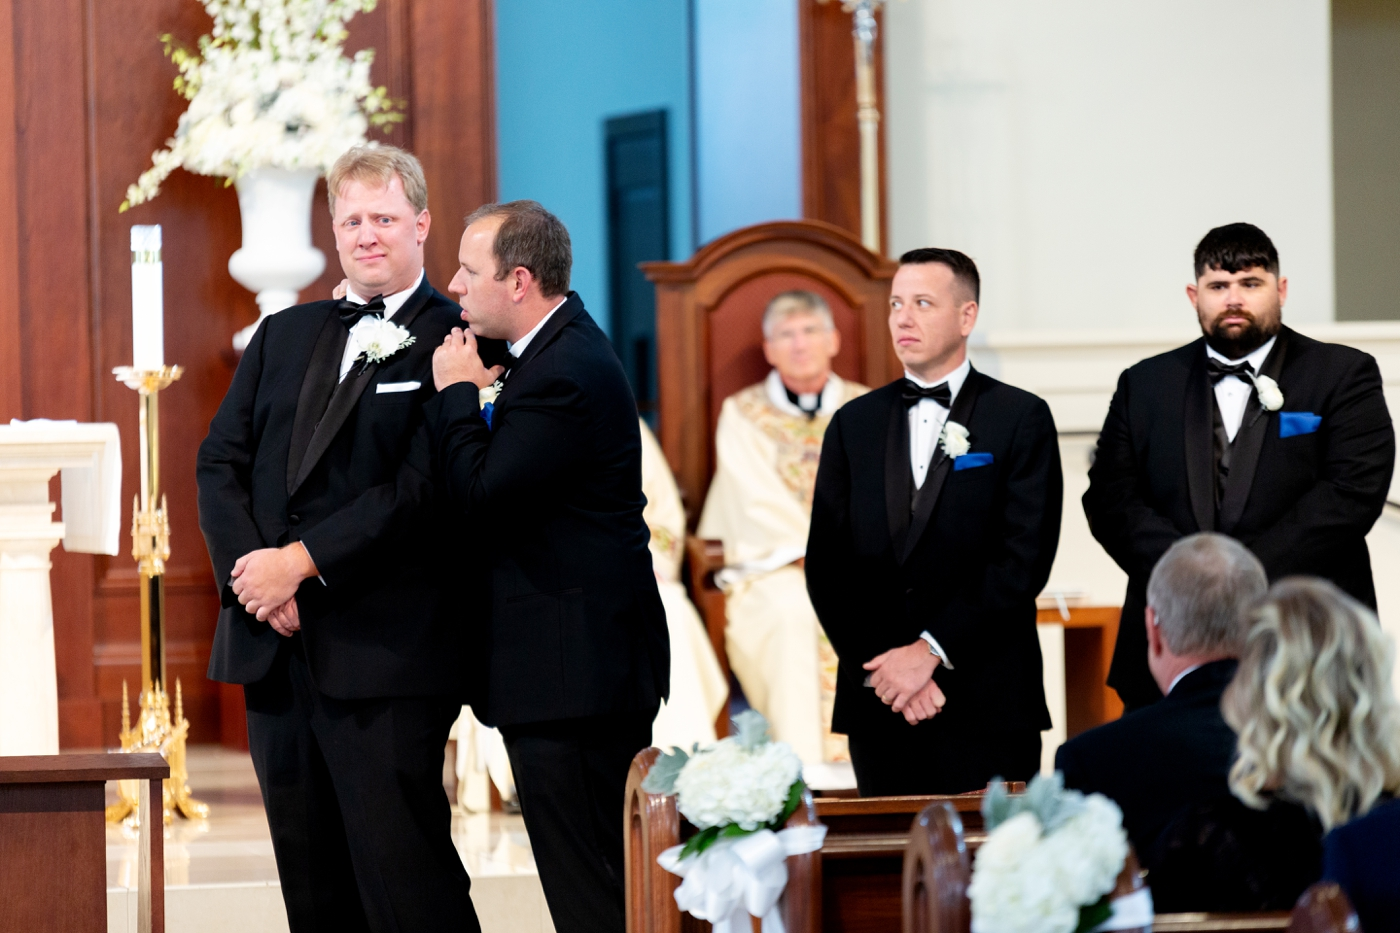 groom cries at aisle